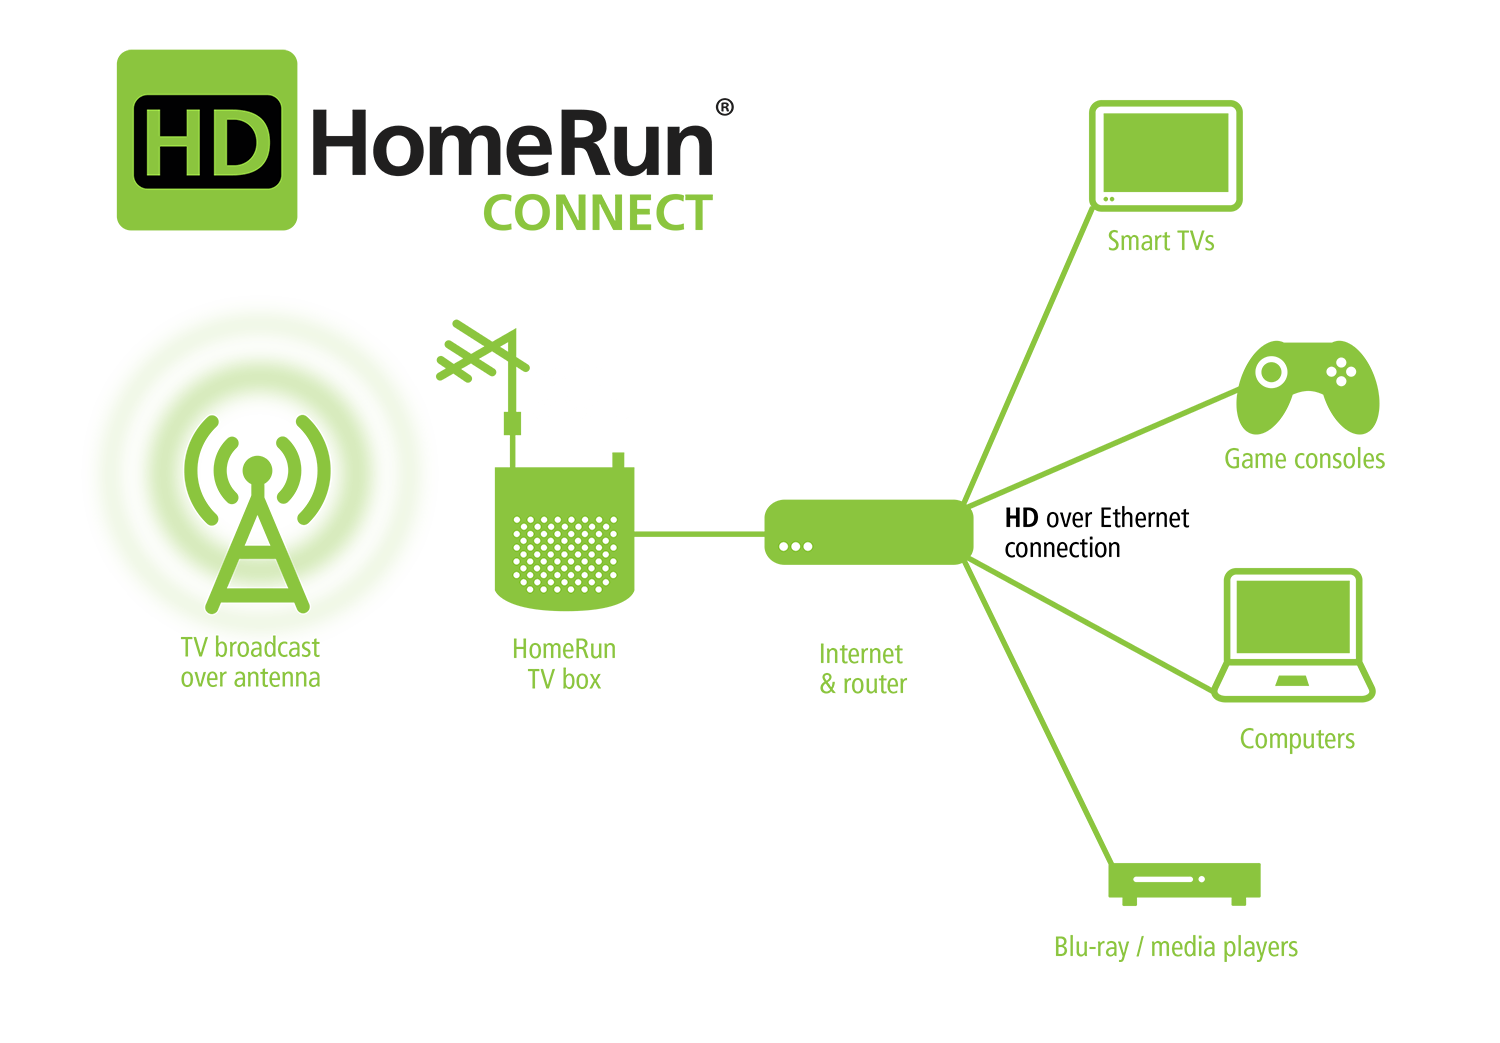 medium resolution of hdhomerun connect diagram the cable guy diagram connection tech living room